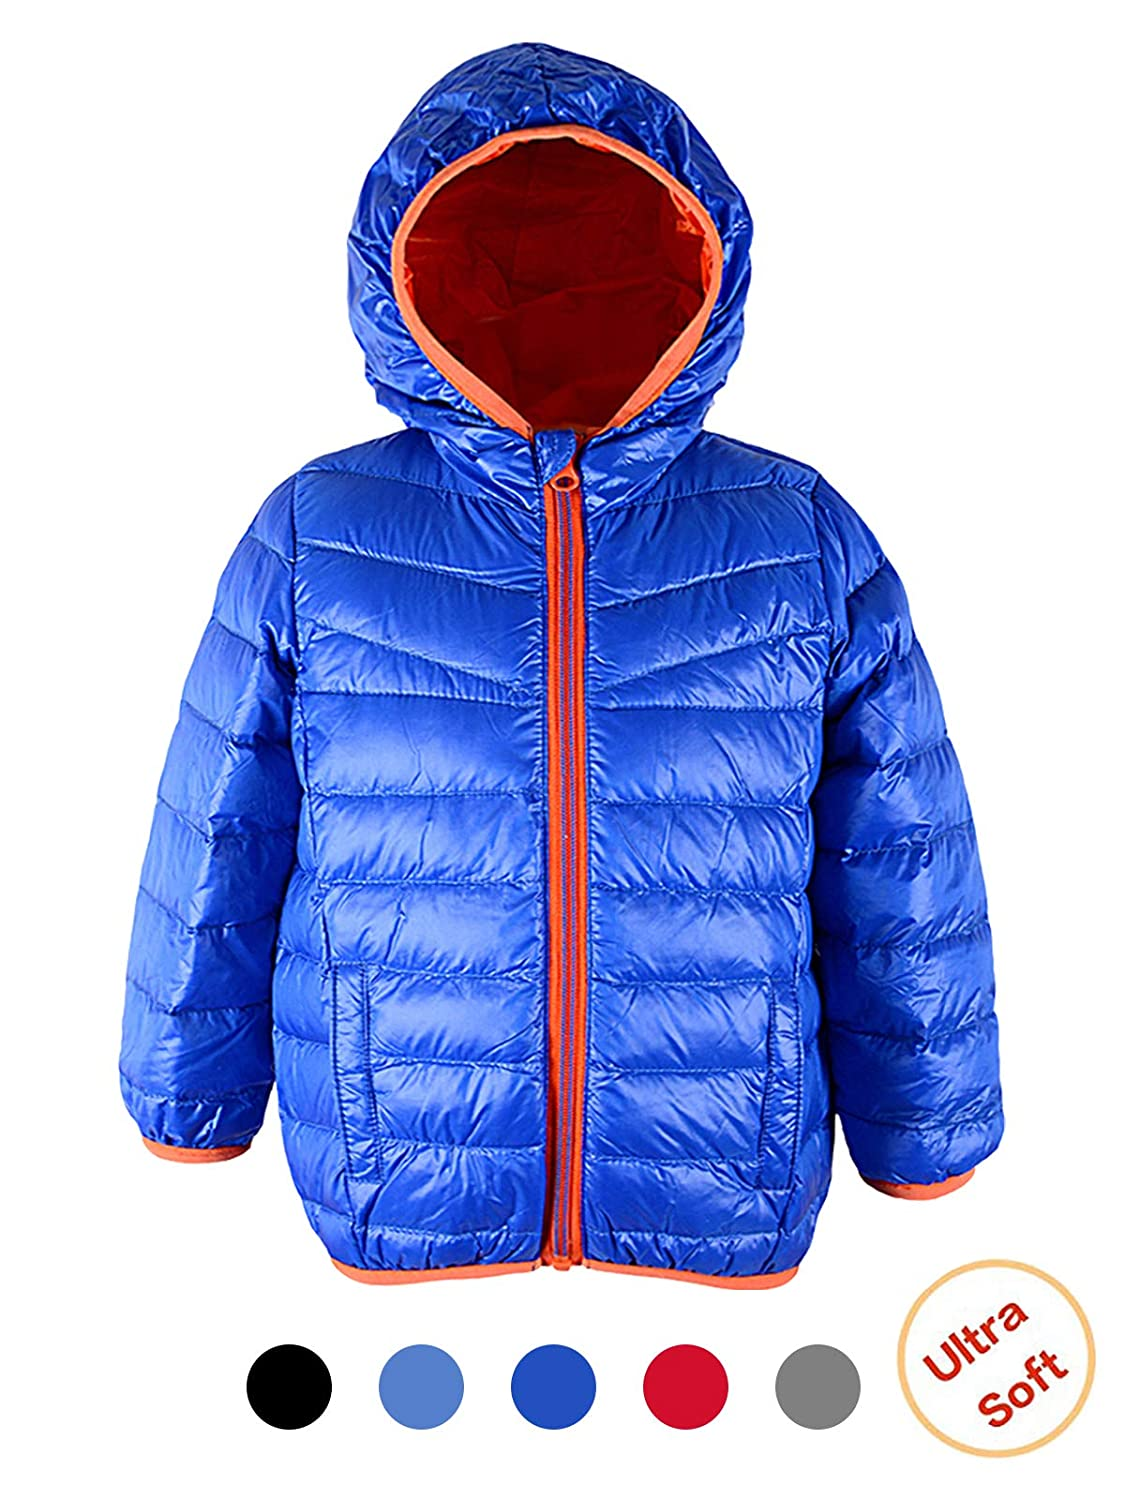 Century Star Packable Down Coat Light Weight Windproof Outwear Colorful Children Warm Puffer Jacket